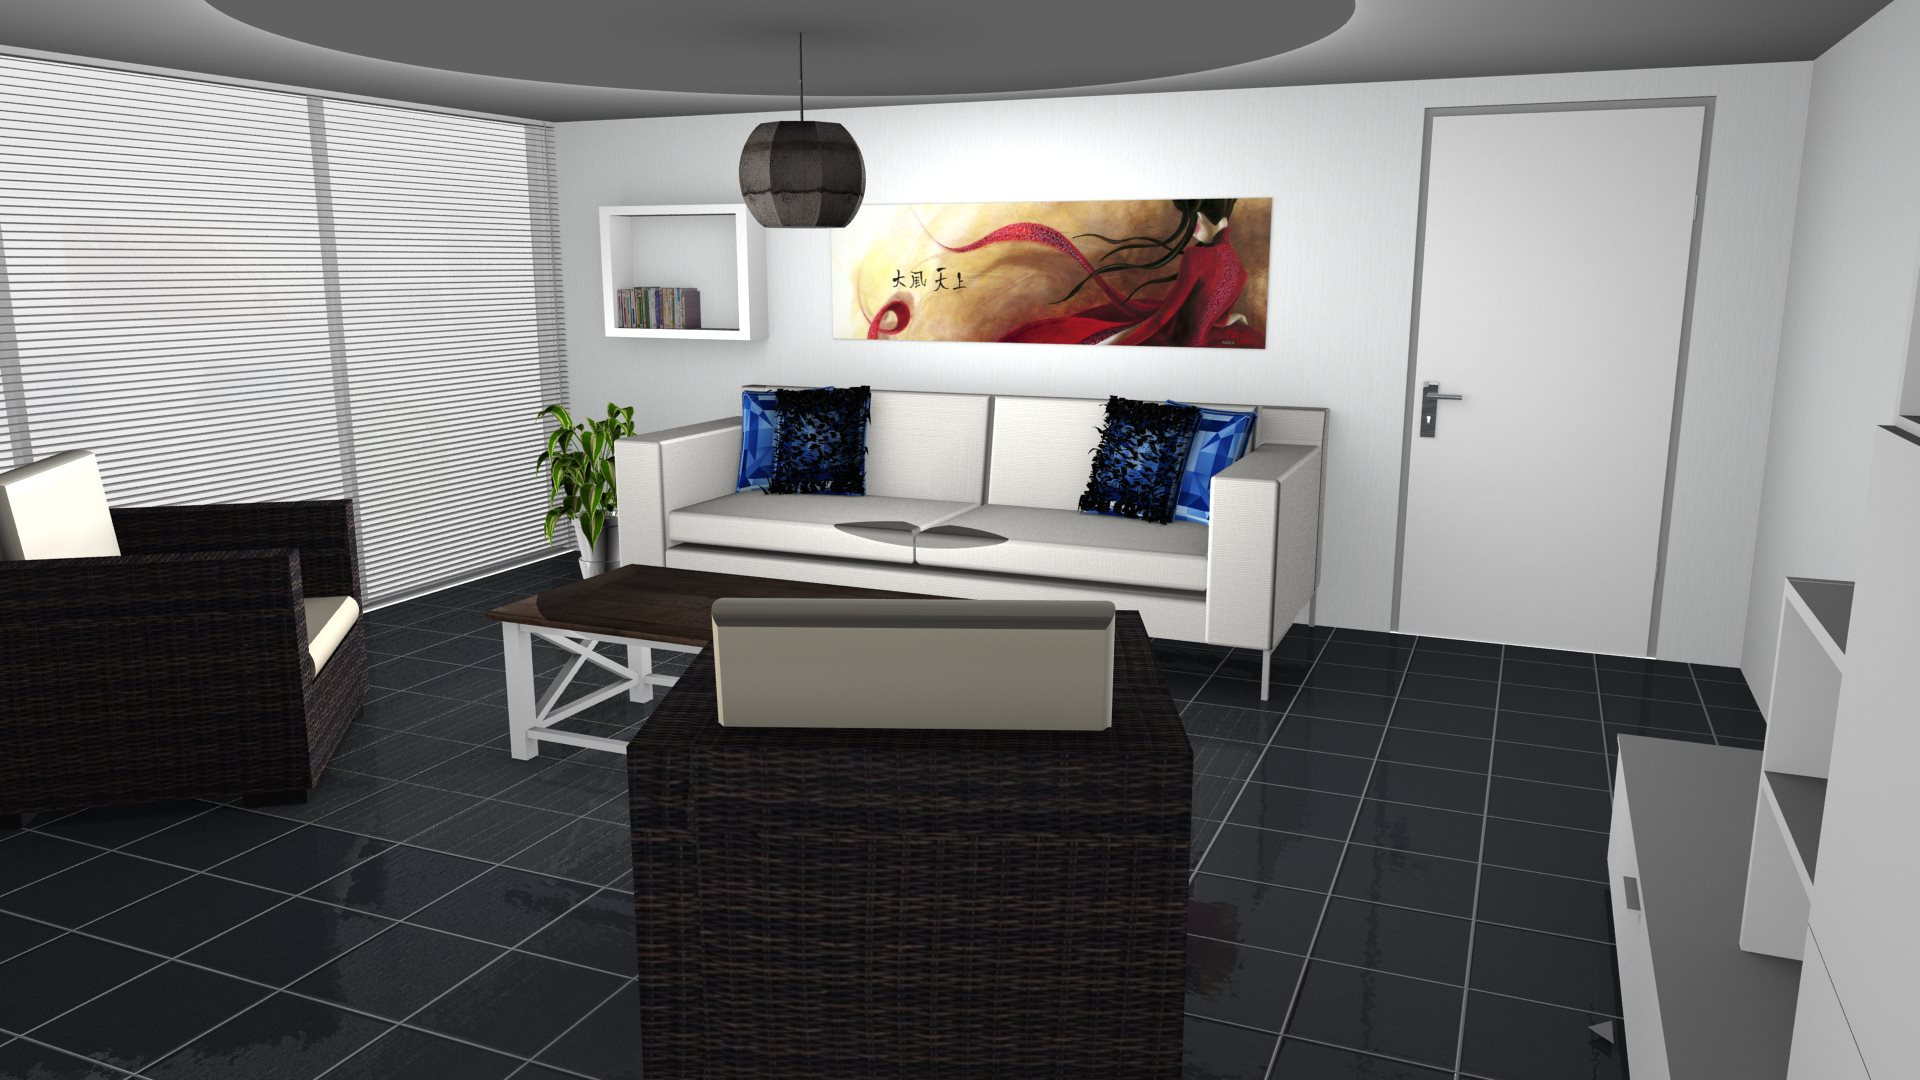 Logiciel amenagement interieur gratuit photos de for Amenagement interieur 3d